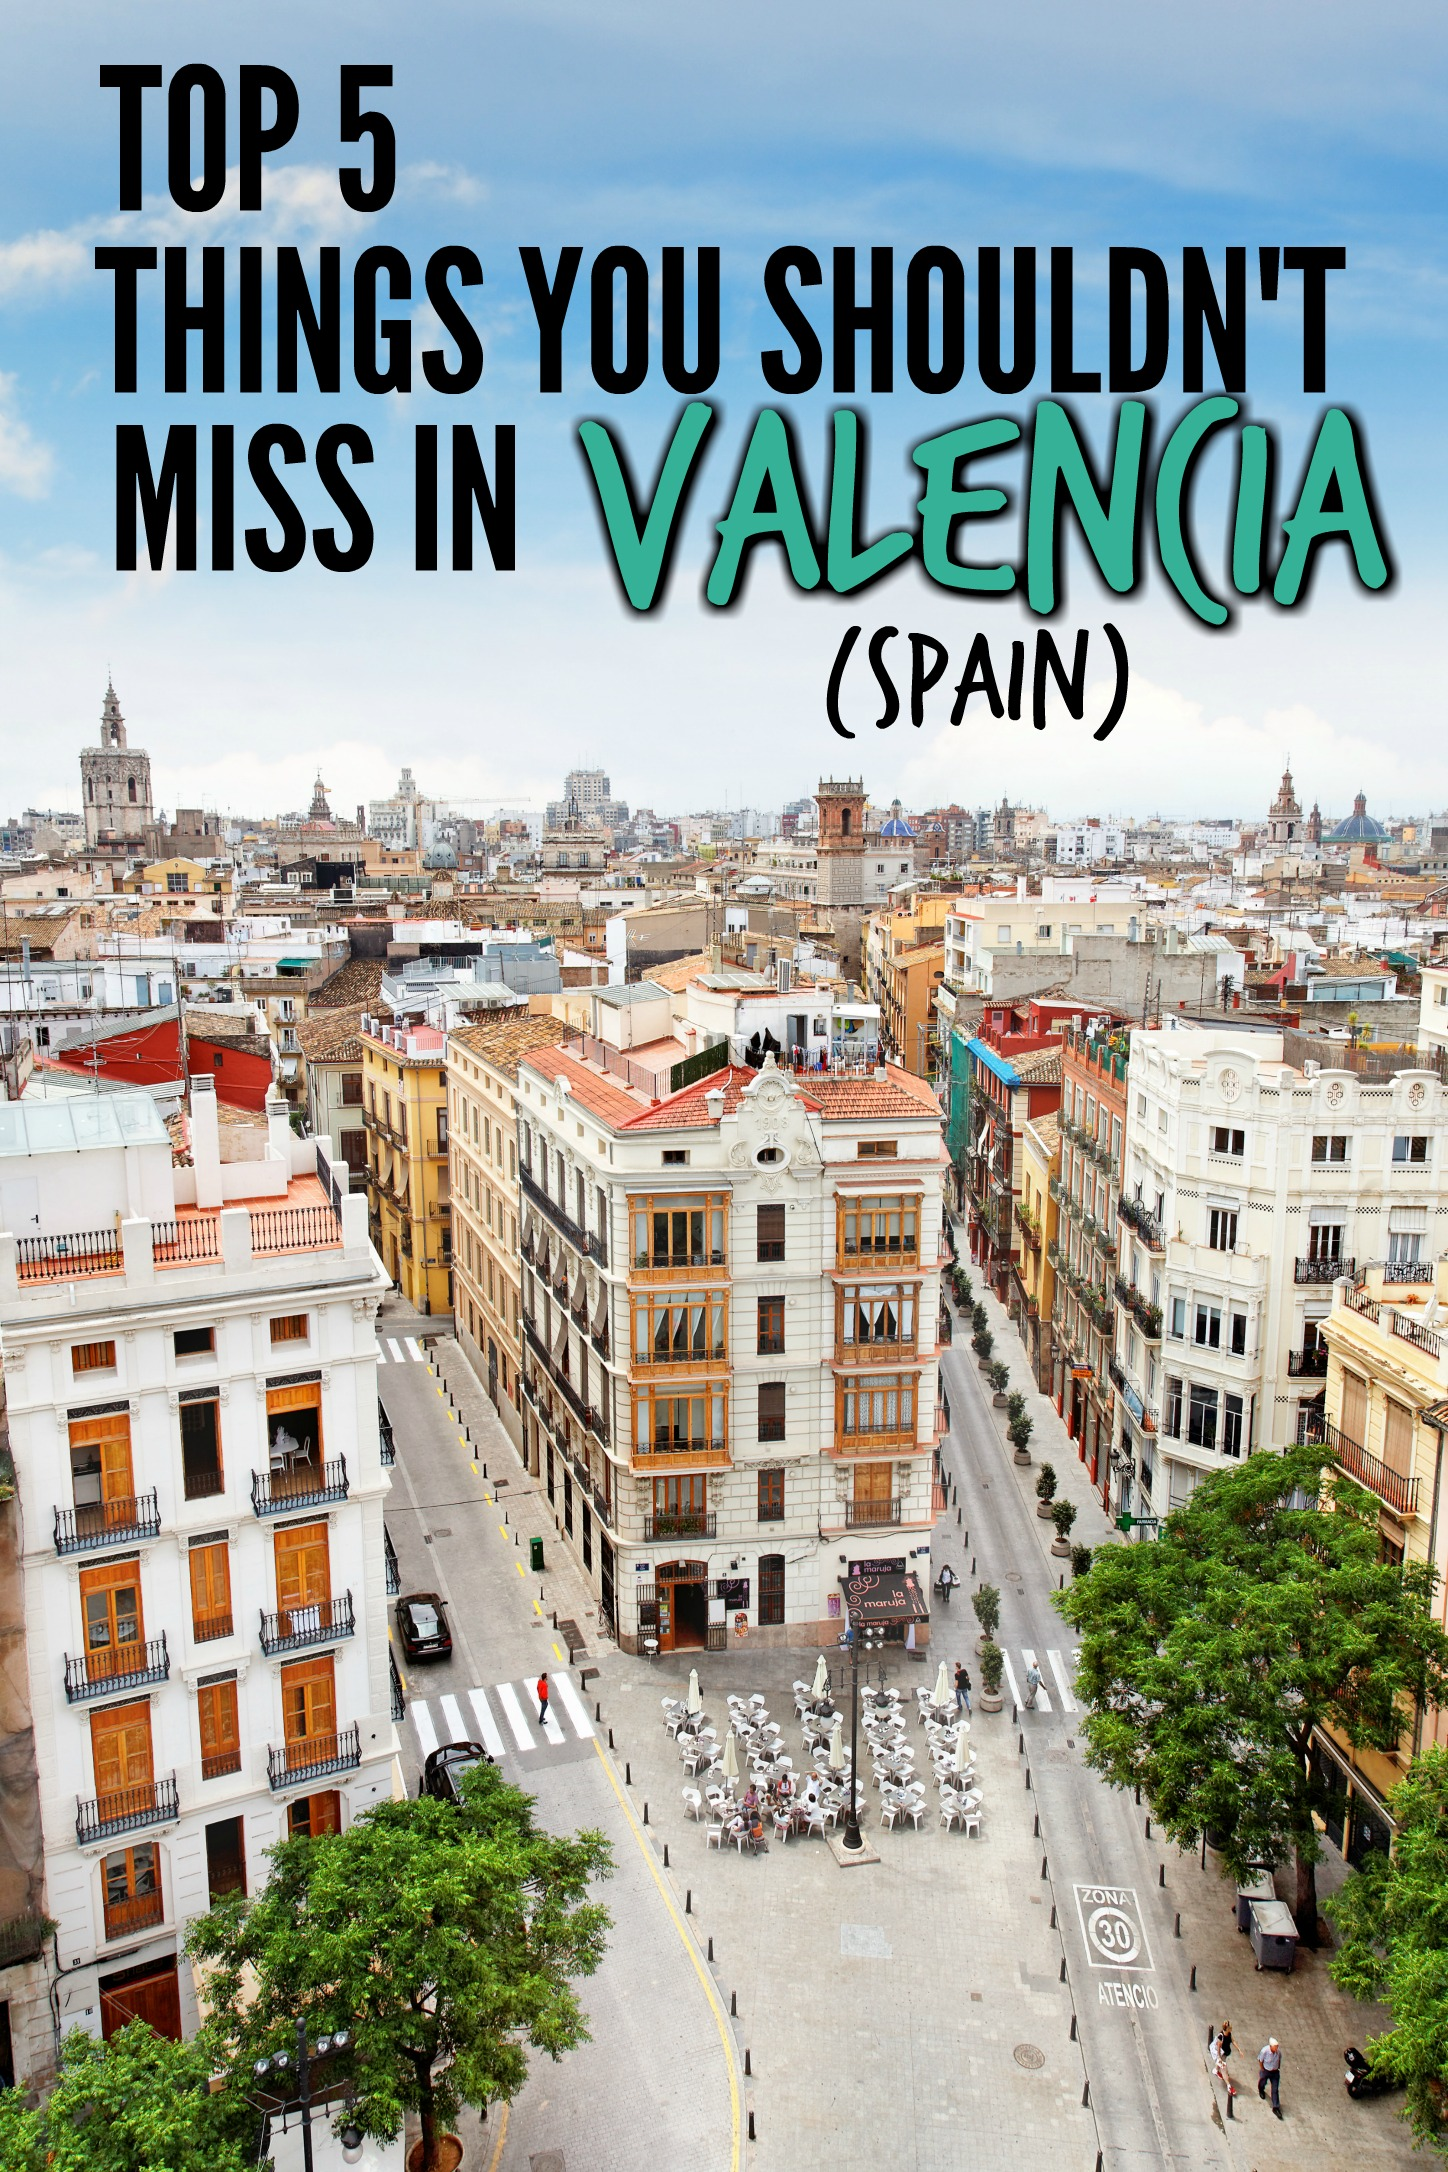 Top 5 Things You Shouldn't Miss in Valencia